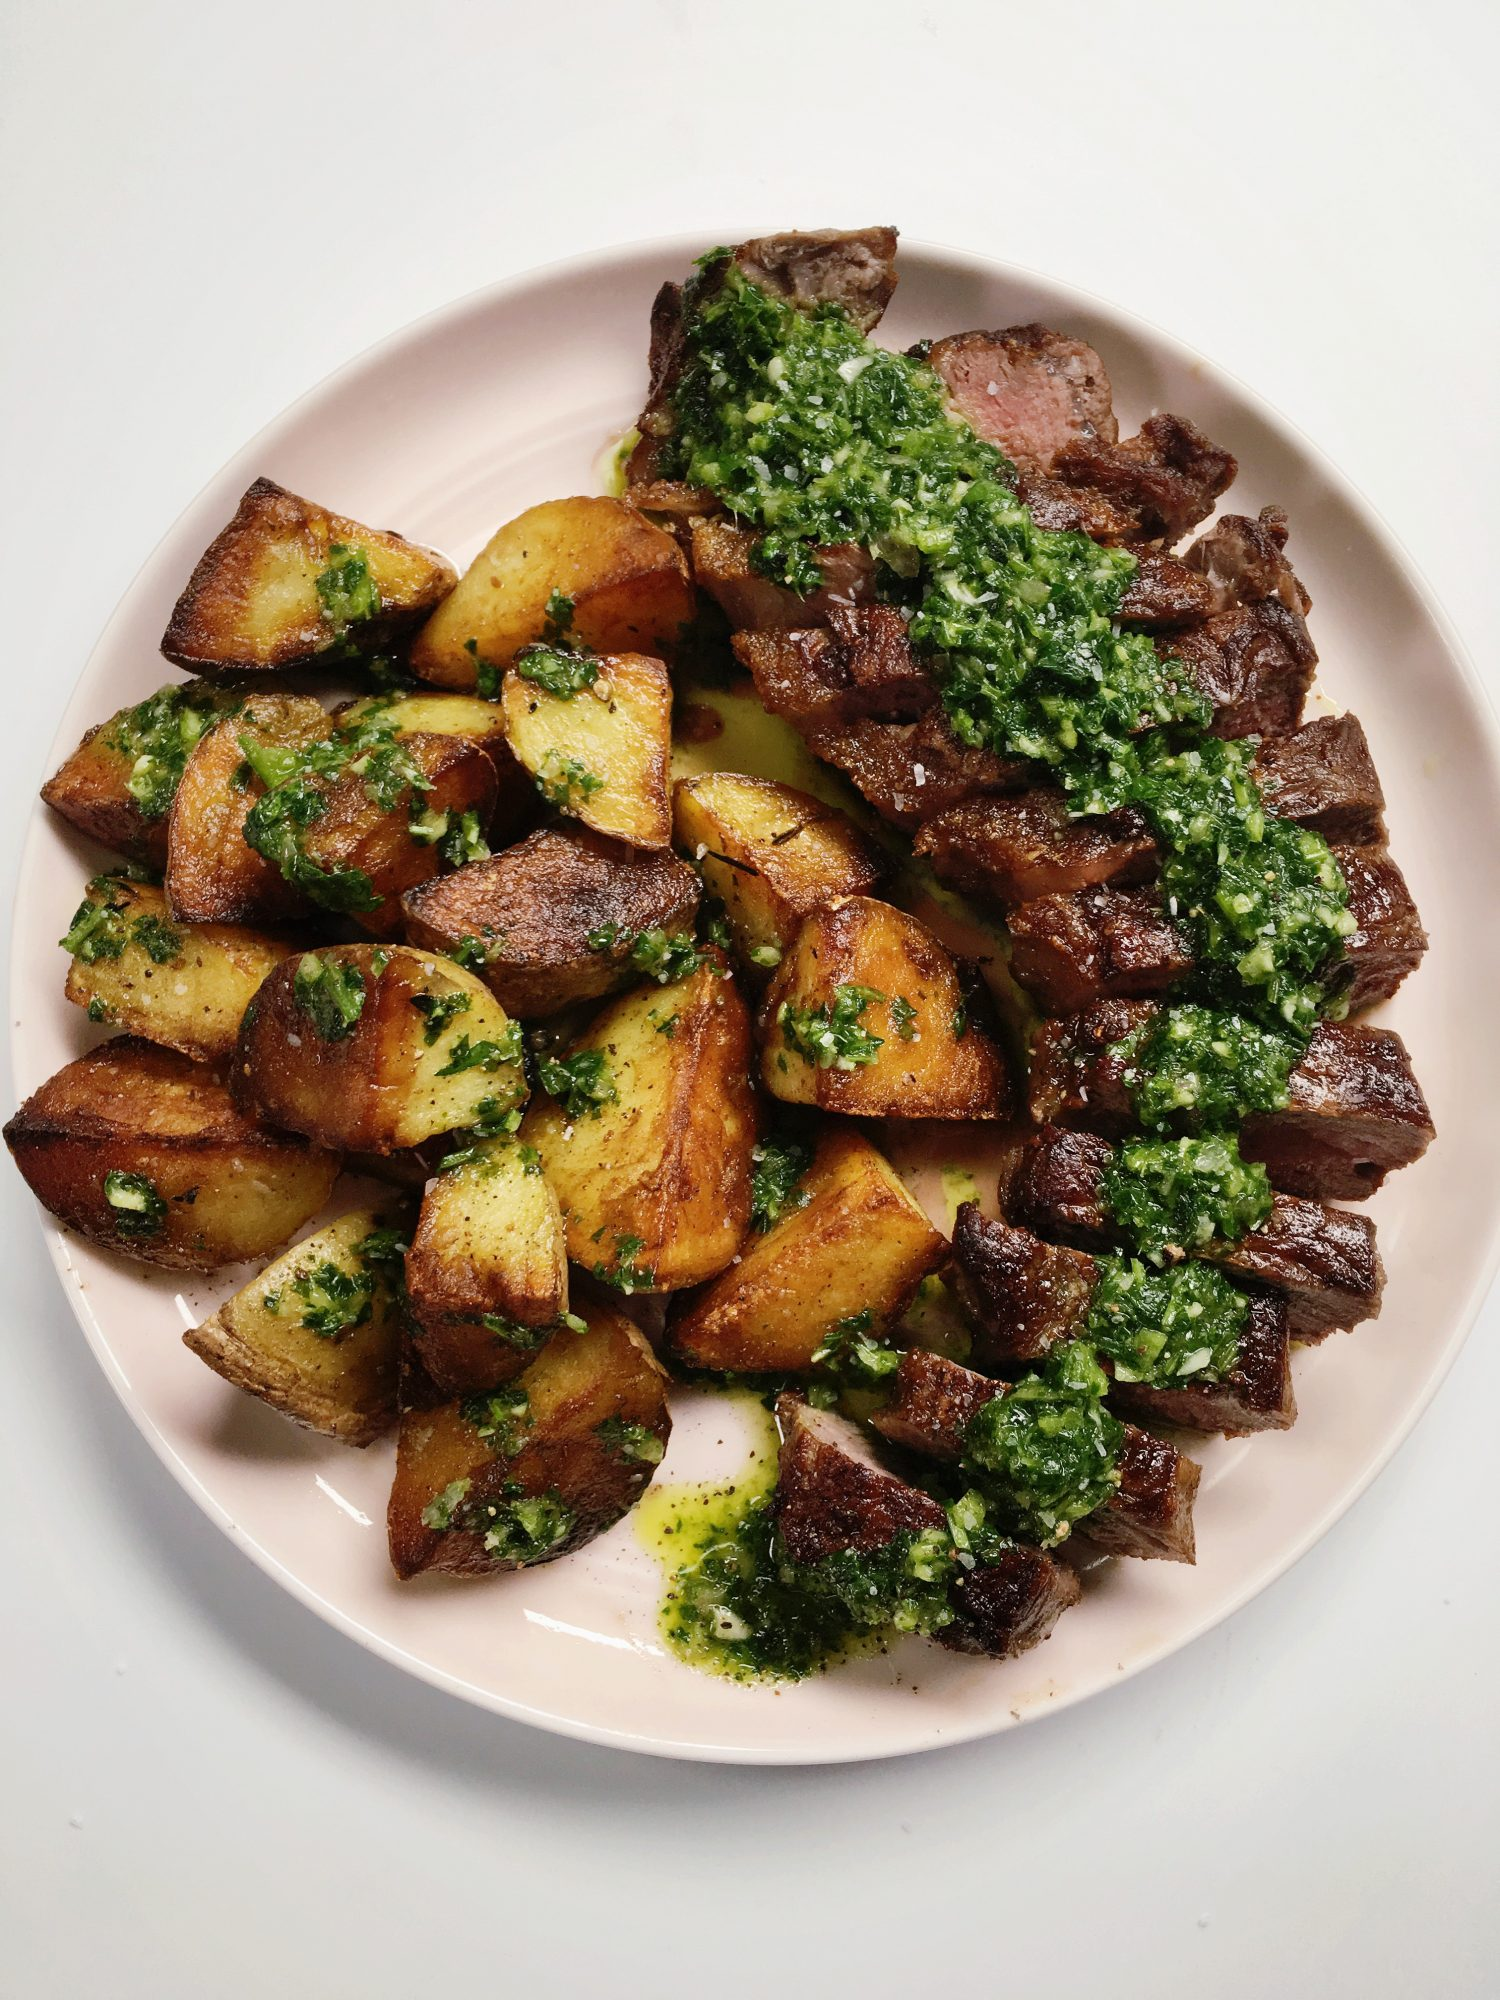 steak dinner meal looking cook easiest myrecipes romantic medium ll week